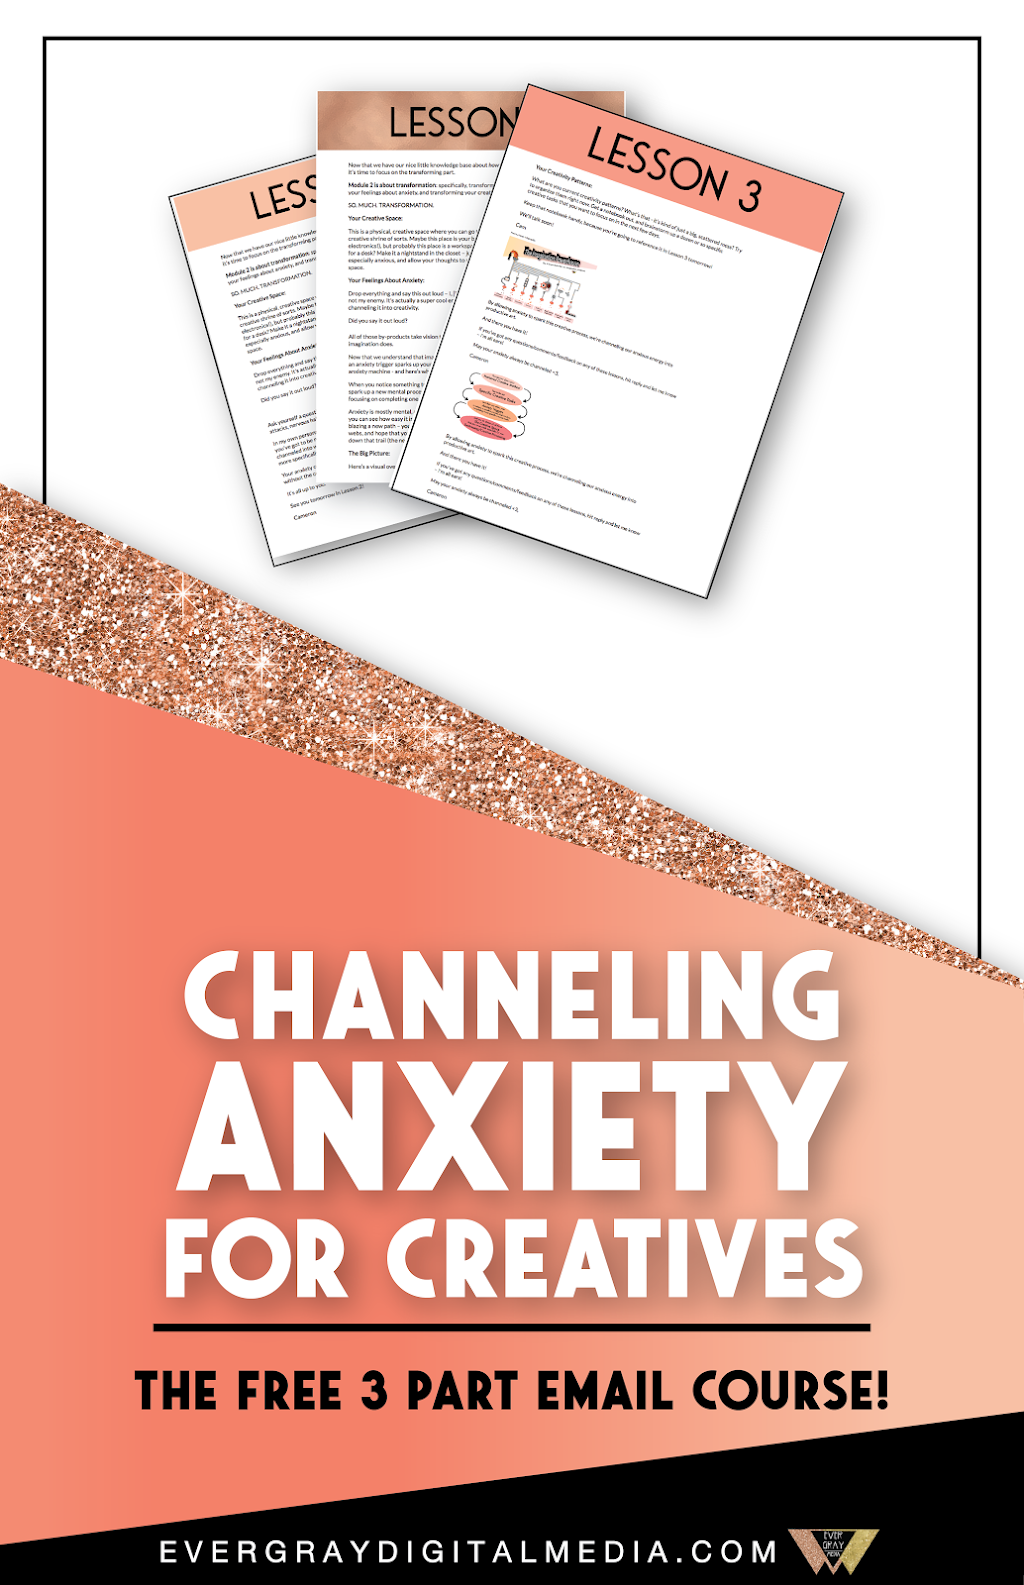 Ever thought of anxiety as an energy resource for creativity? It can be! Find out how this practice works, and how you can do it too with the free Channeling Anxiety for Creatives email course